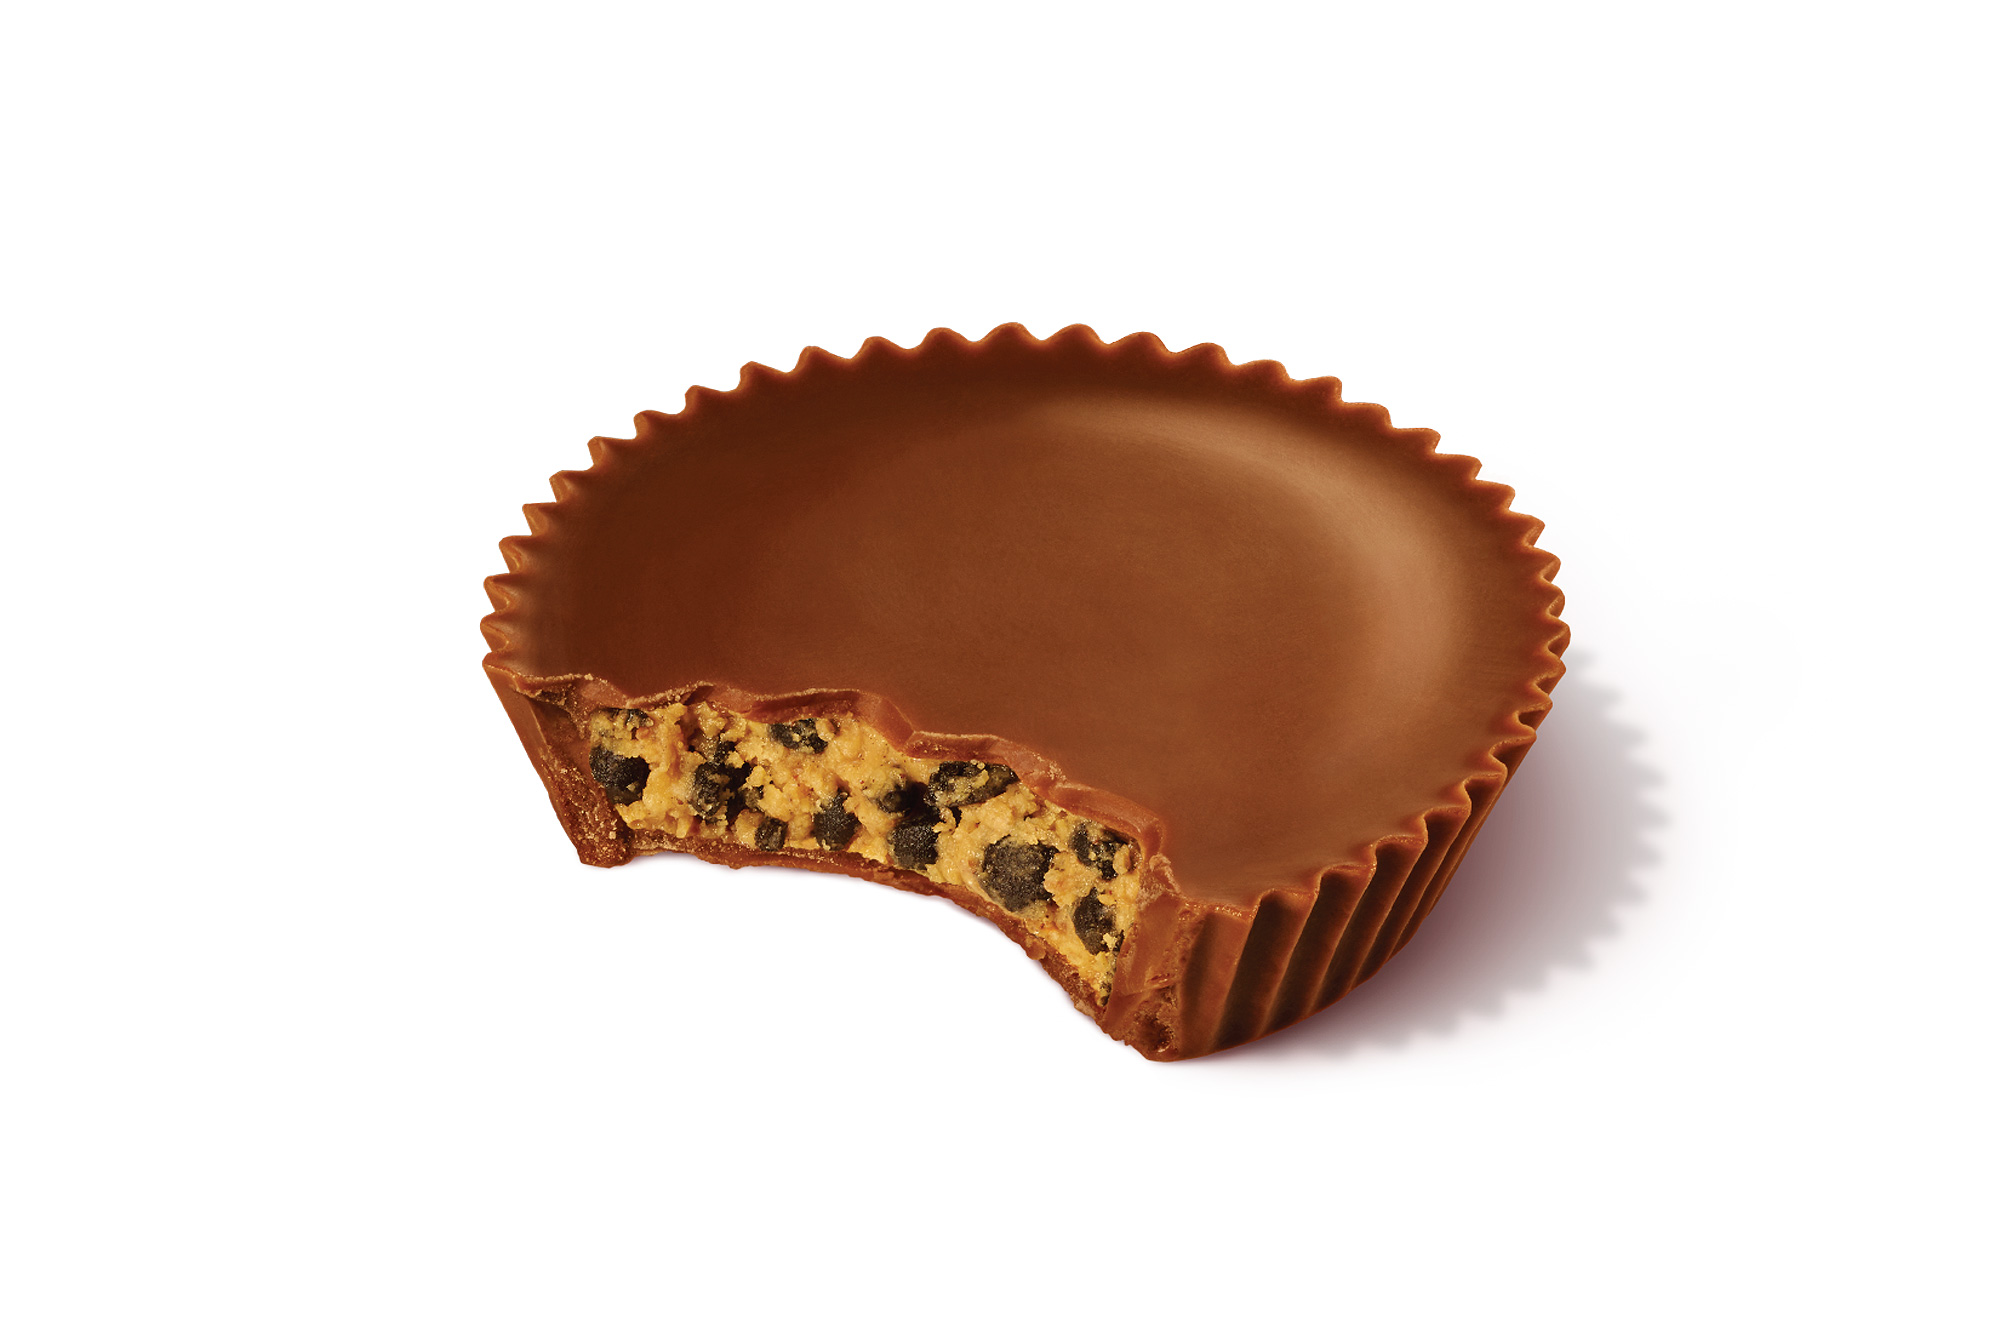 Reese's Launches New Peanut Butter Cups Filled with Crunchy Chocolate Bits